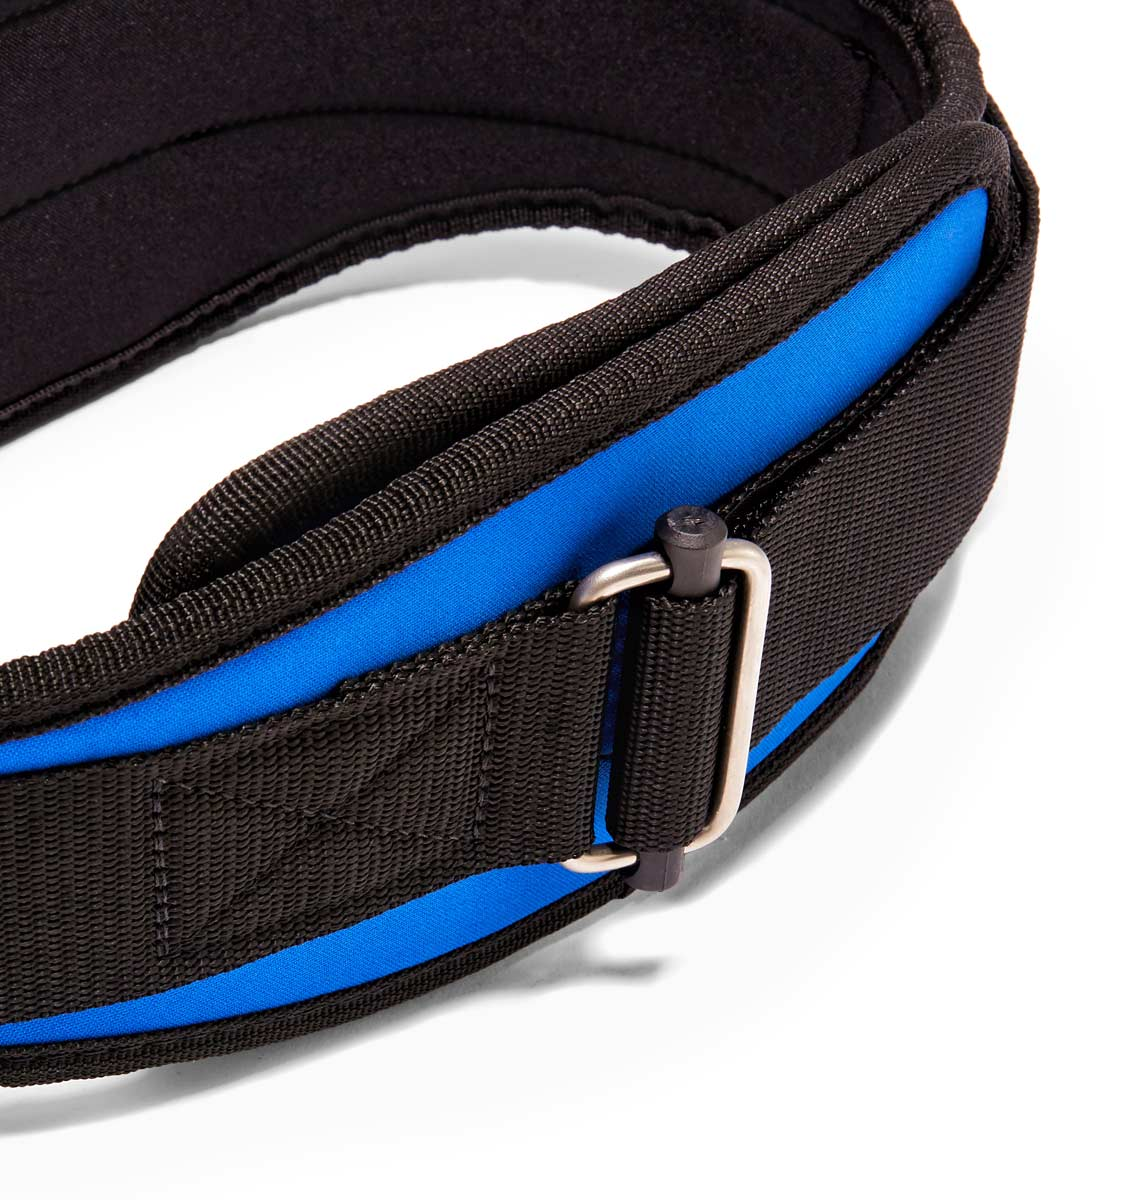 2006 Schiek Contour Weight Lifting Belt Royal Blue Buckle